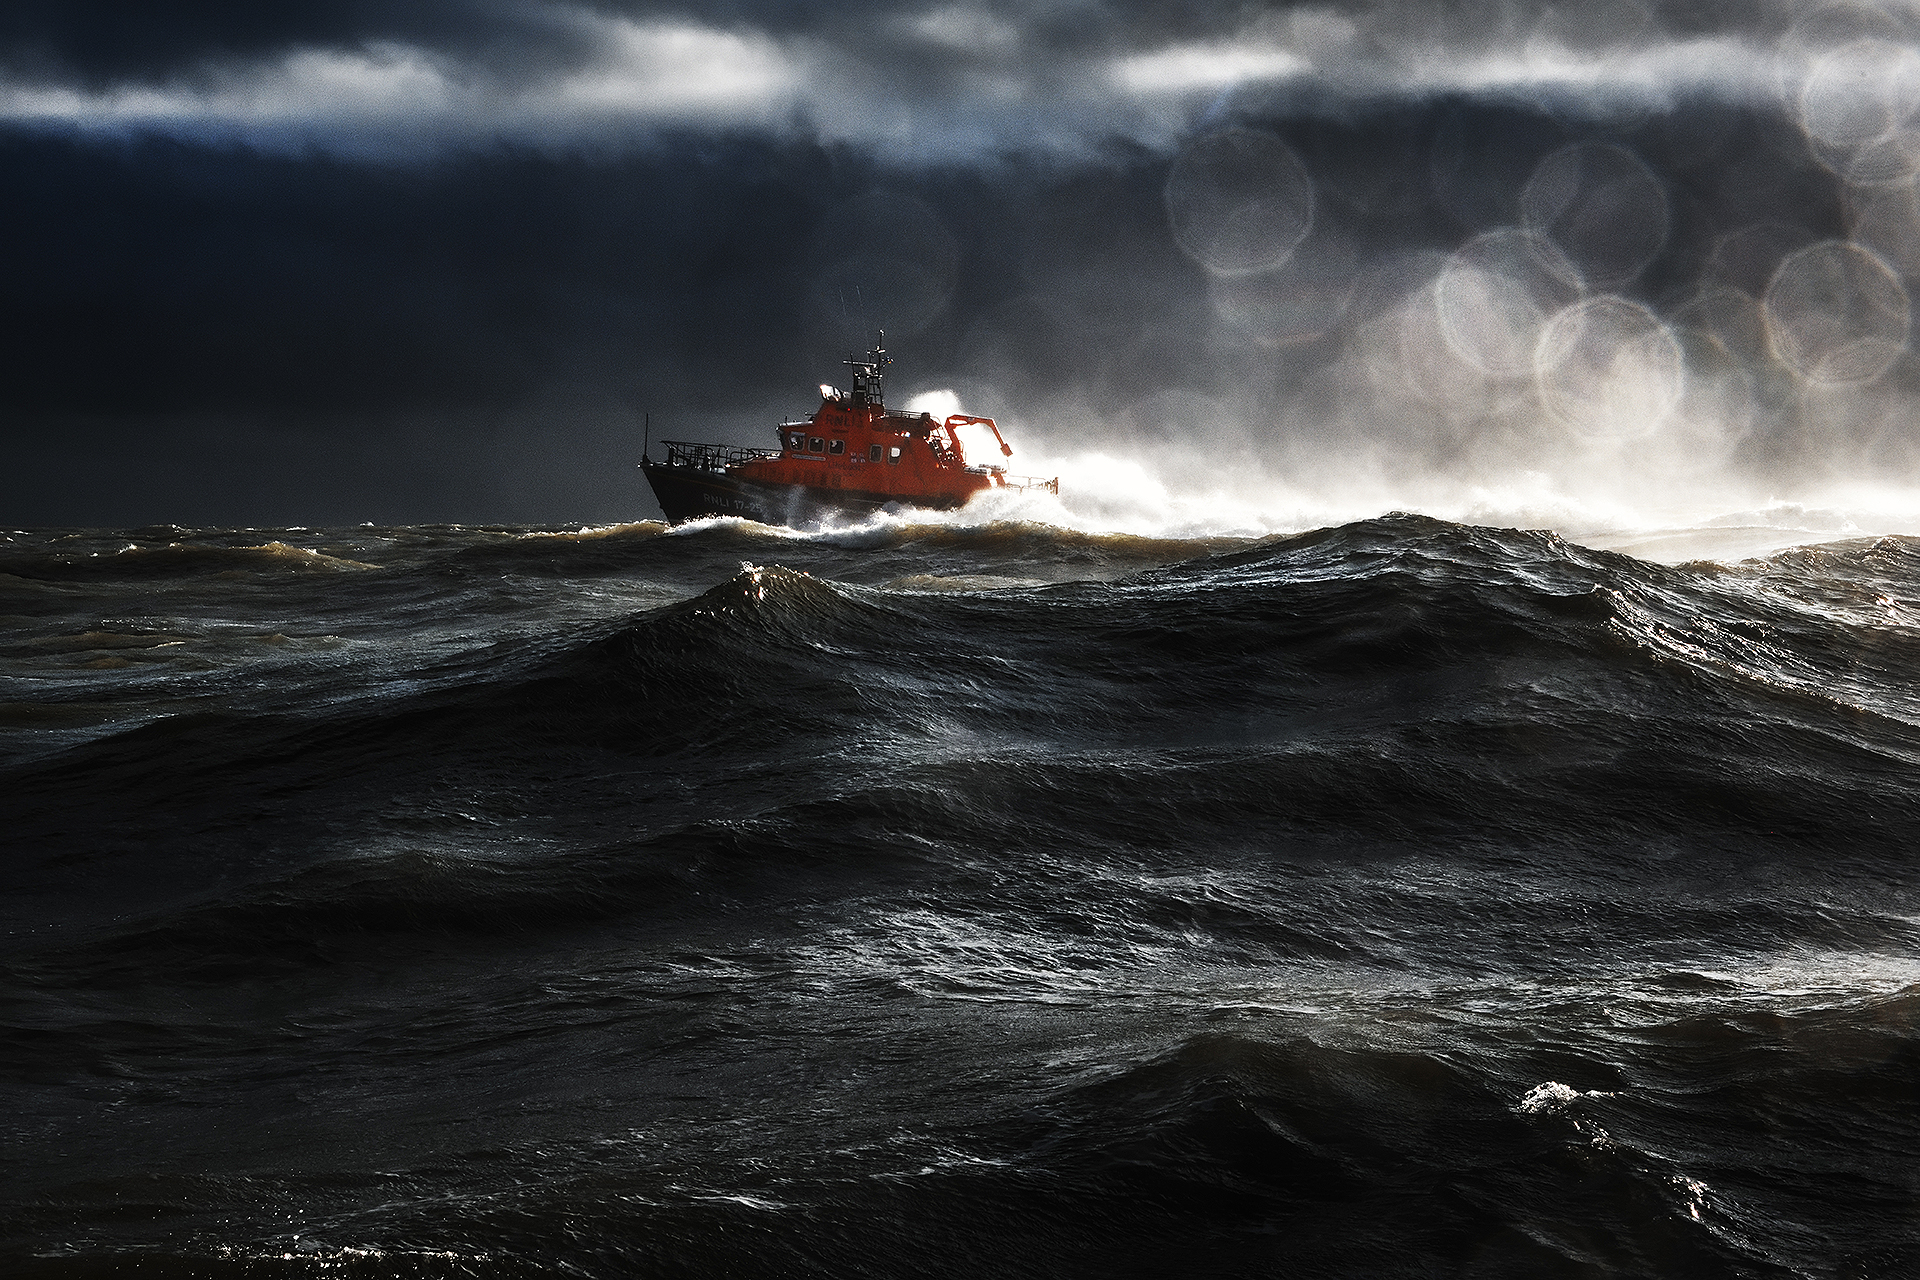 Helly Hansen RNLI Saving Lives At Sea